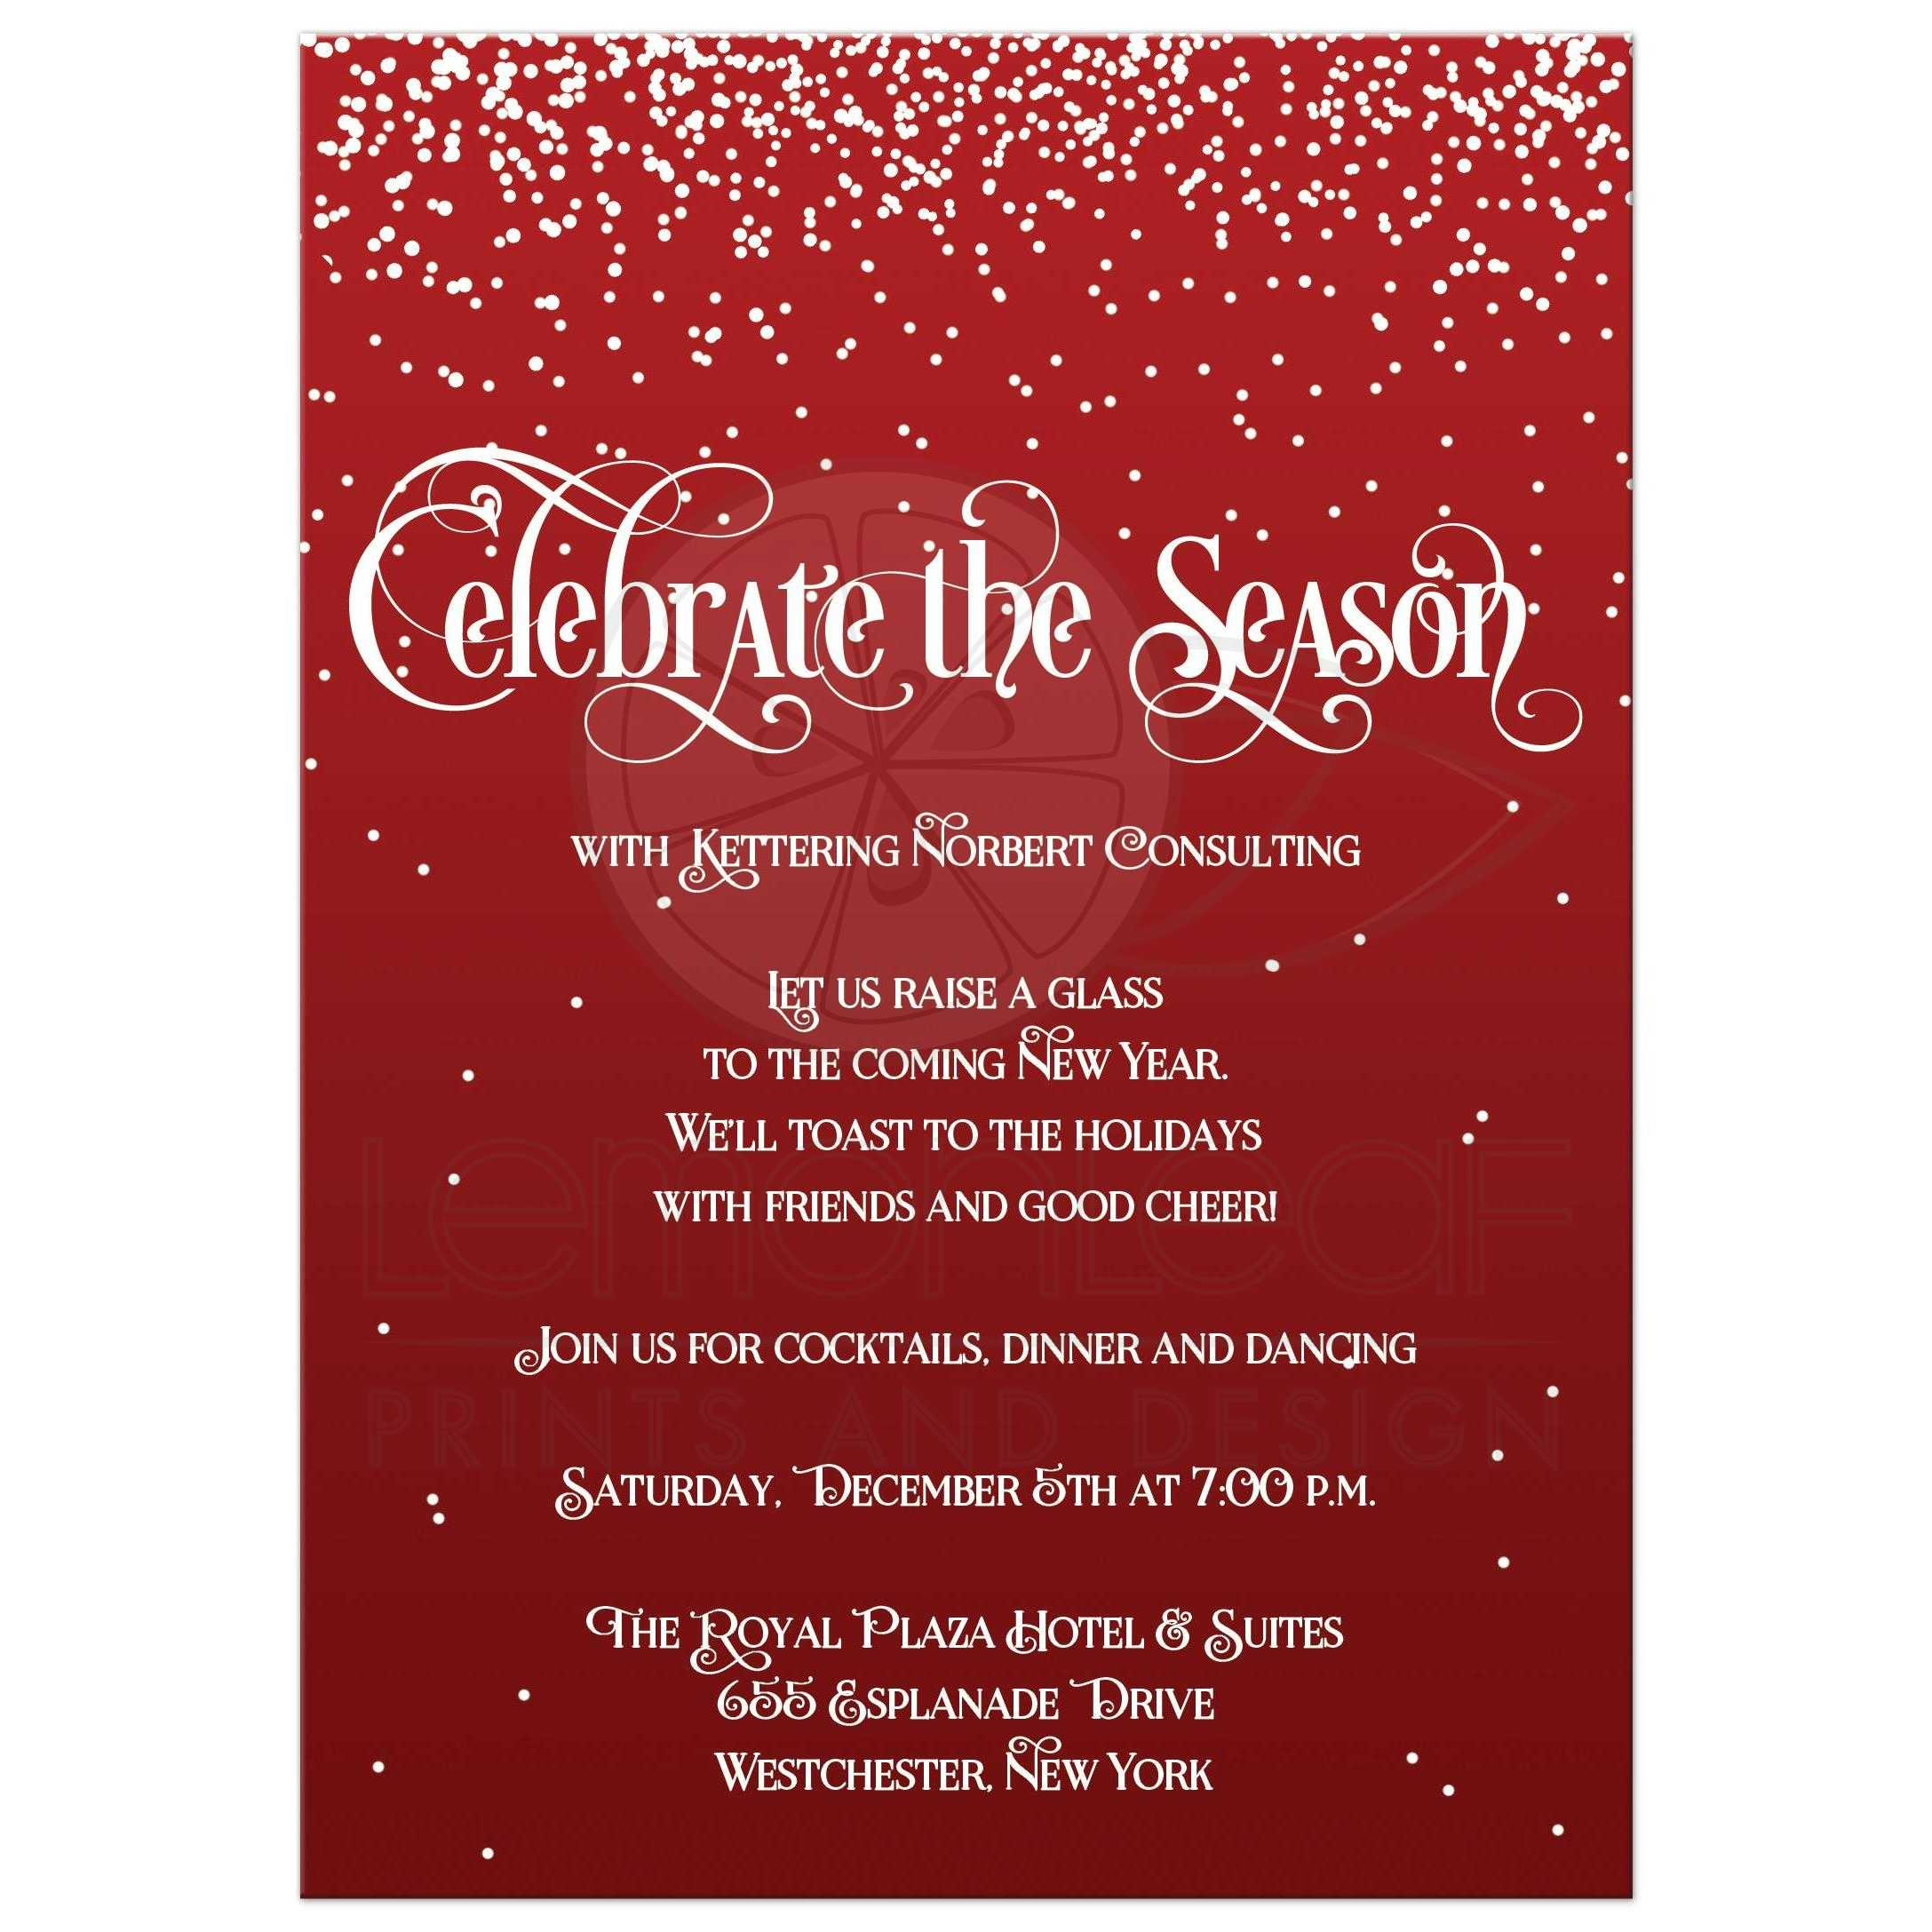 Holiday Party Invitation | Celebrate the Season | Red, White Falling ...